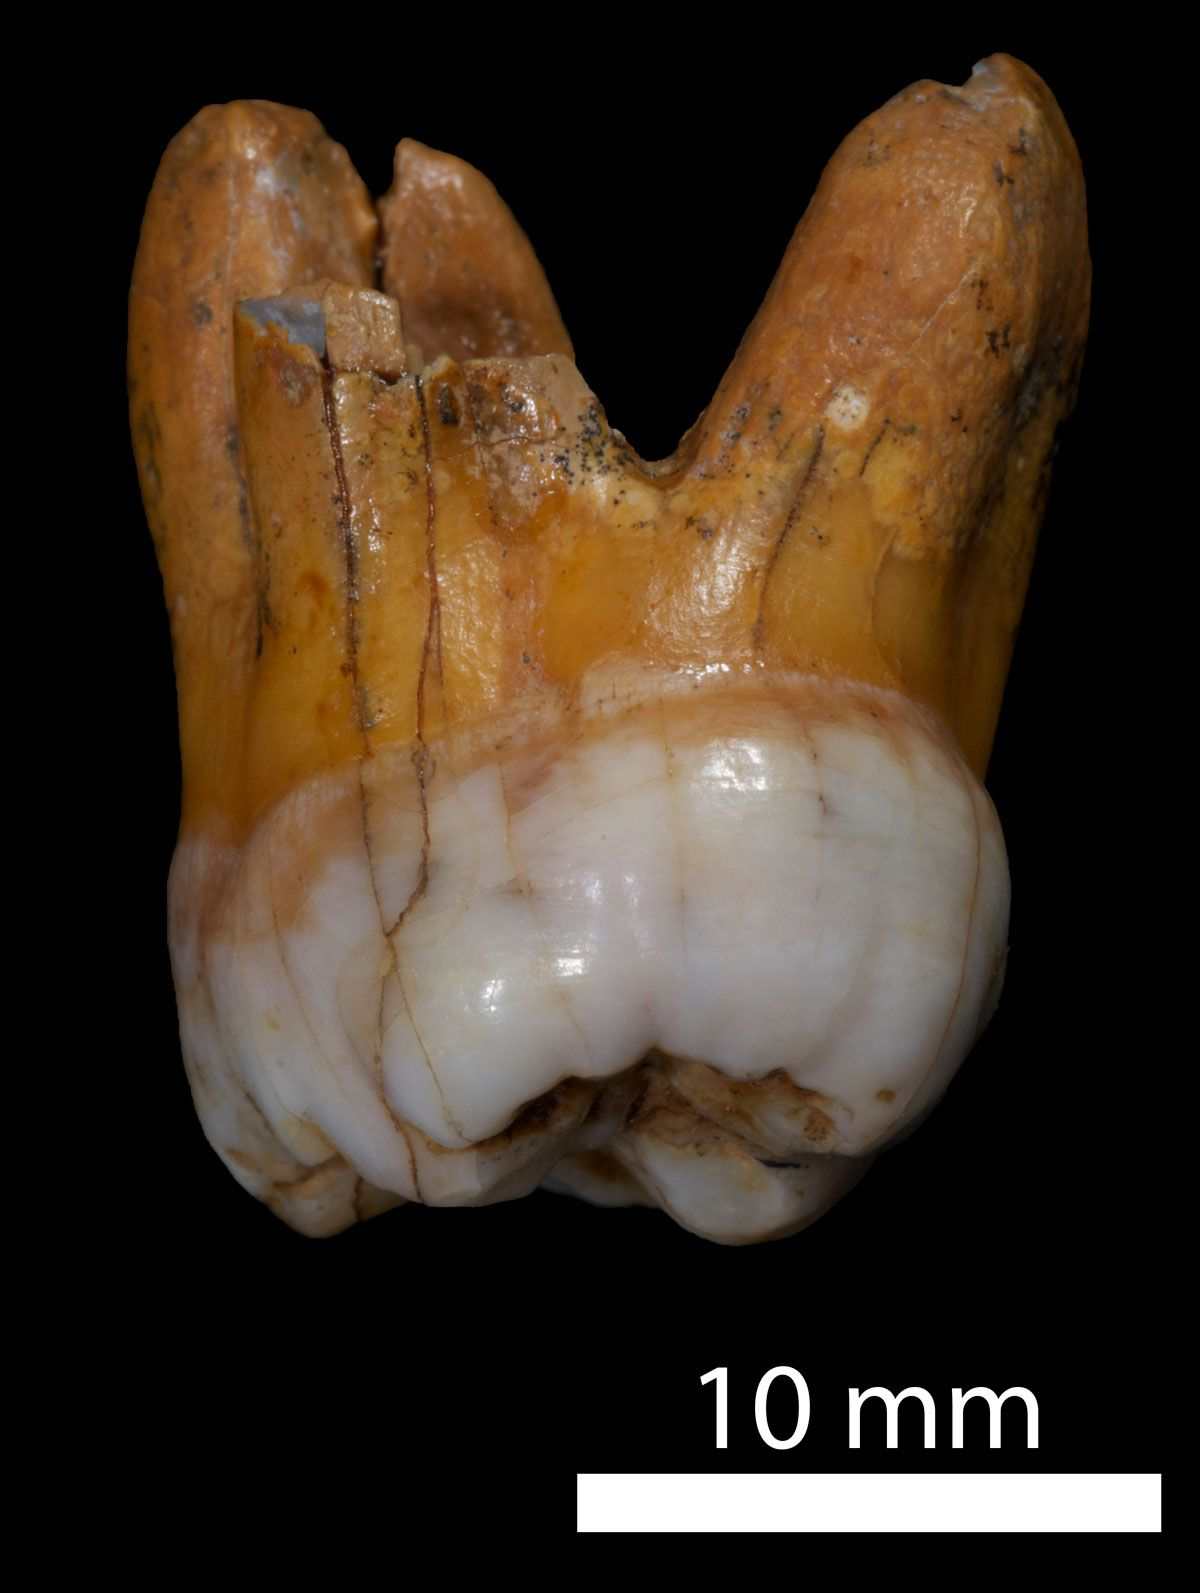 DNA analysis of Denisovan molars offers more clues about